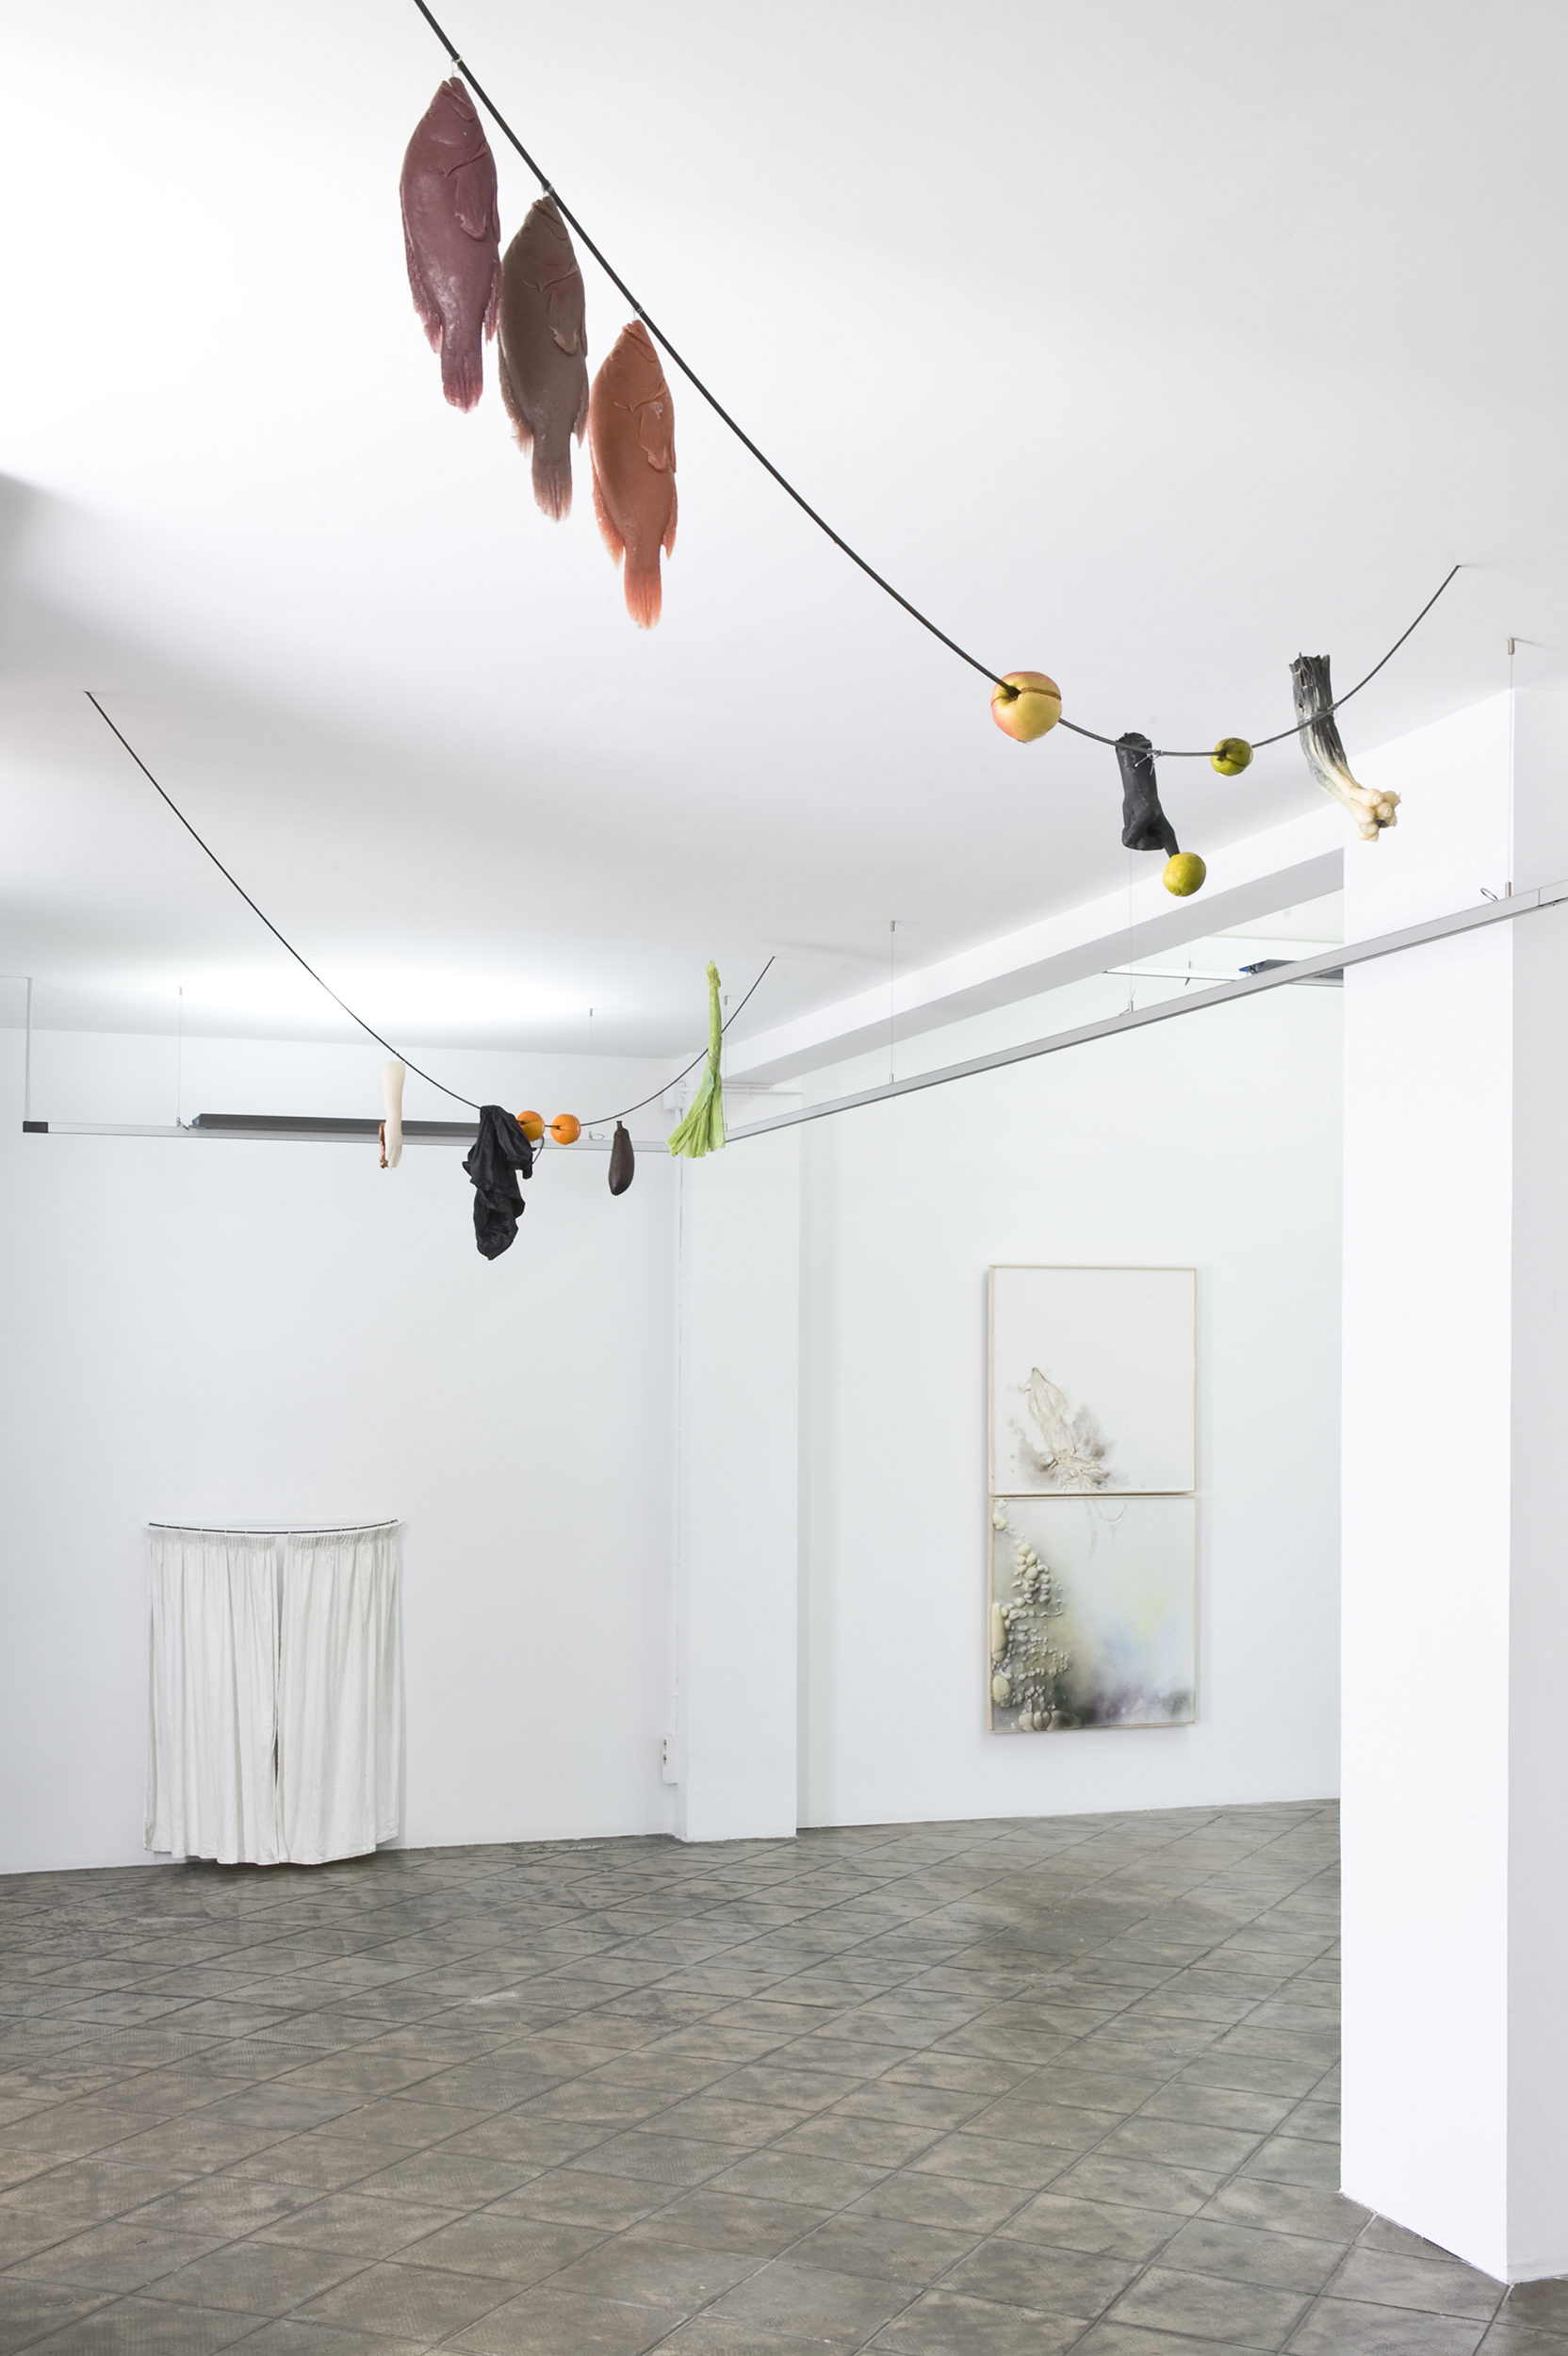 Installation view: The Constant Repetition of False, ProjecteSD, Barcelona, 2013 |  | ProjecteSD